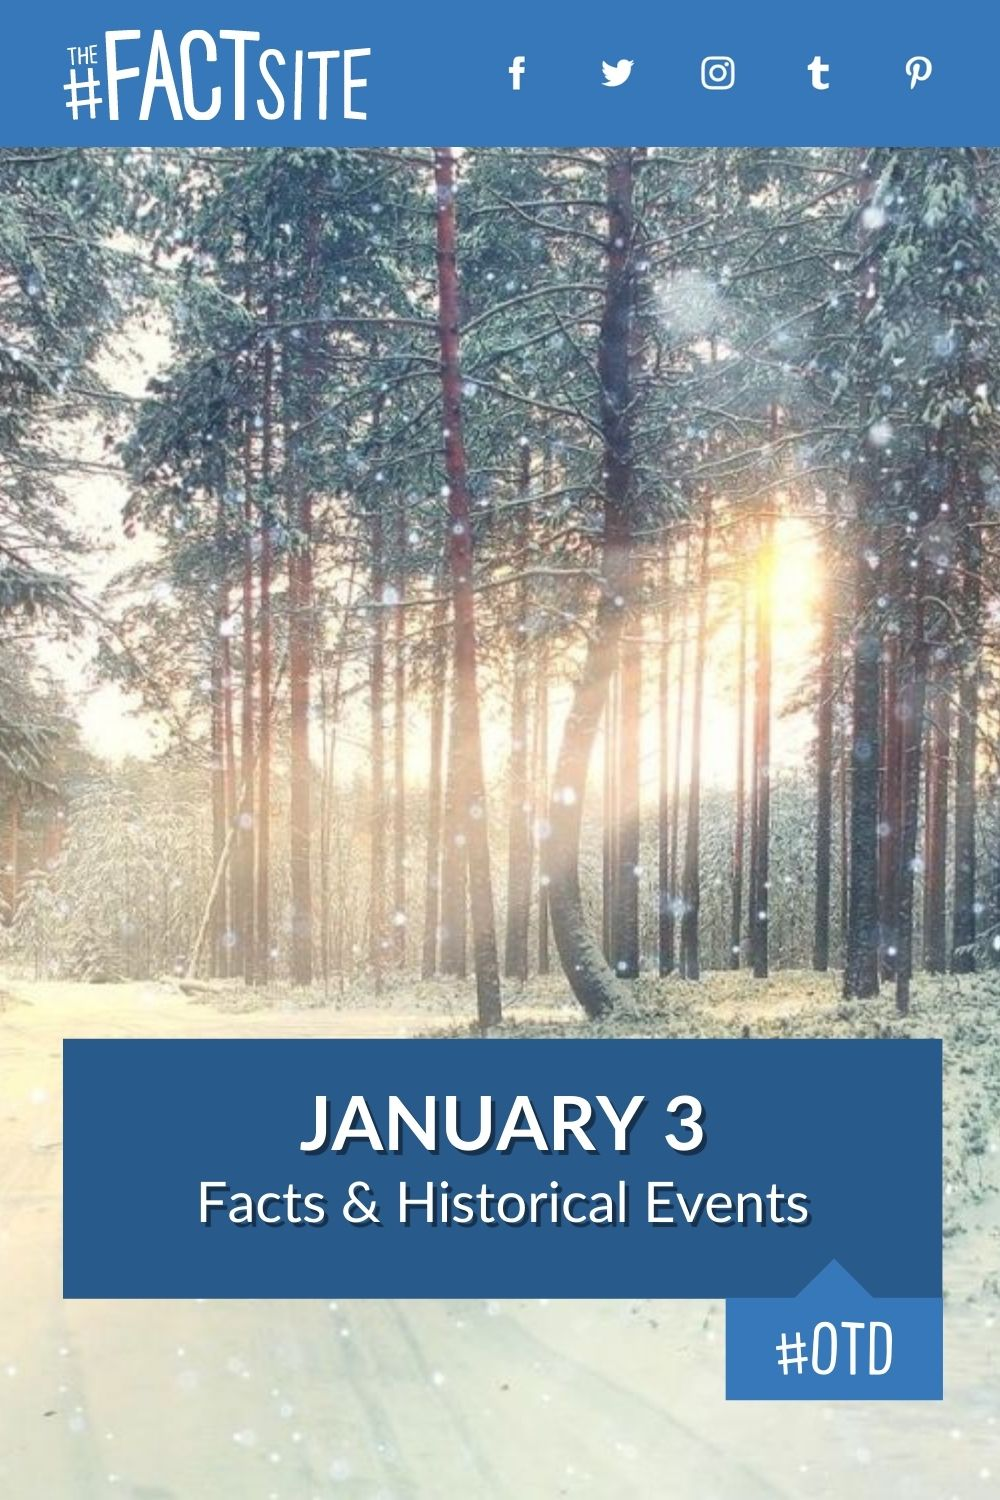 Facts & Historic Events That Happened on January 3